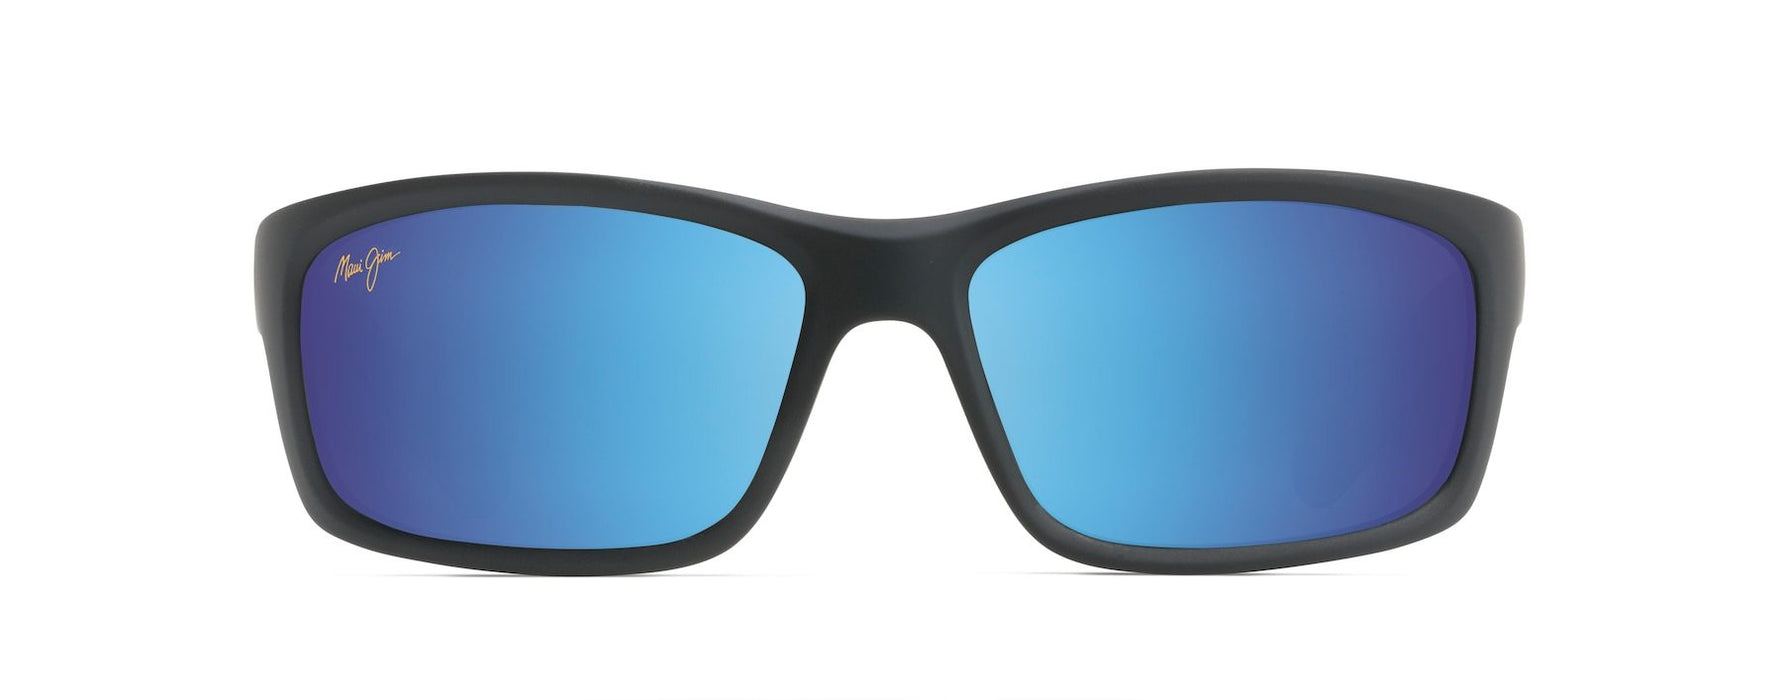 MyMaui Kanaio Coast MM766-013 Sunglasses